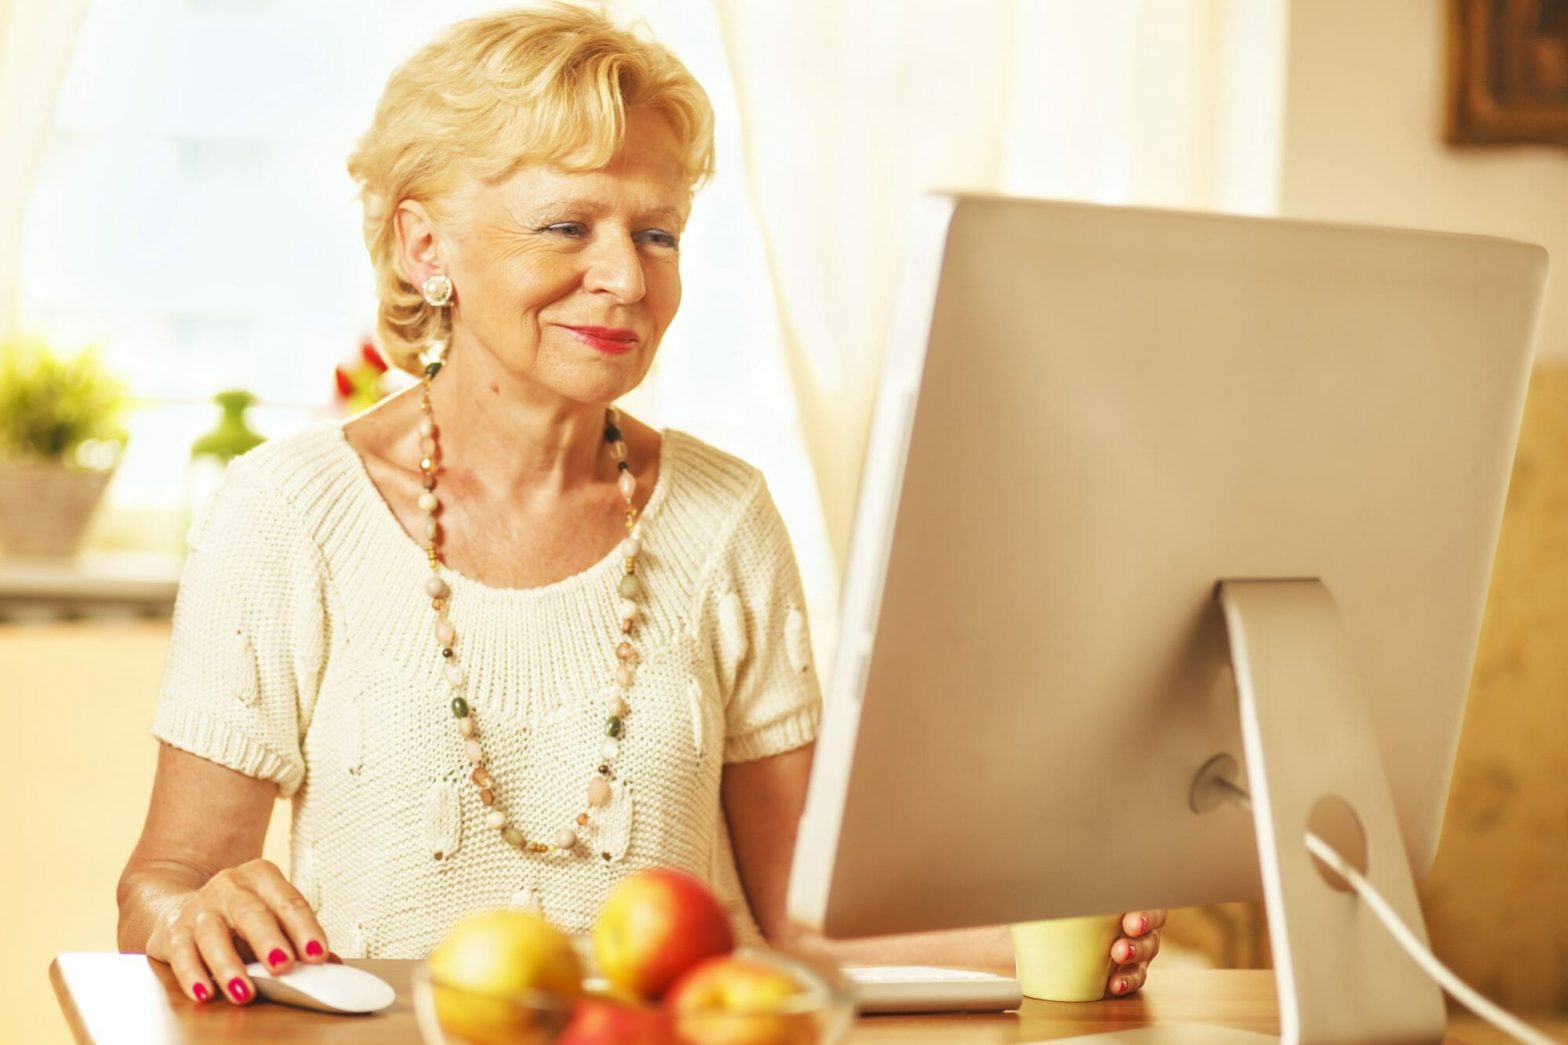 Back to Work at Our Age?! New Careers for Seniors